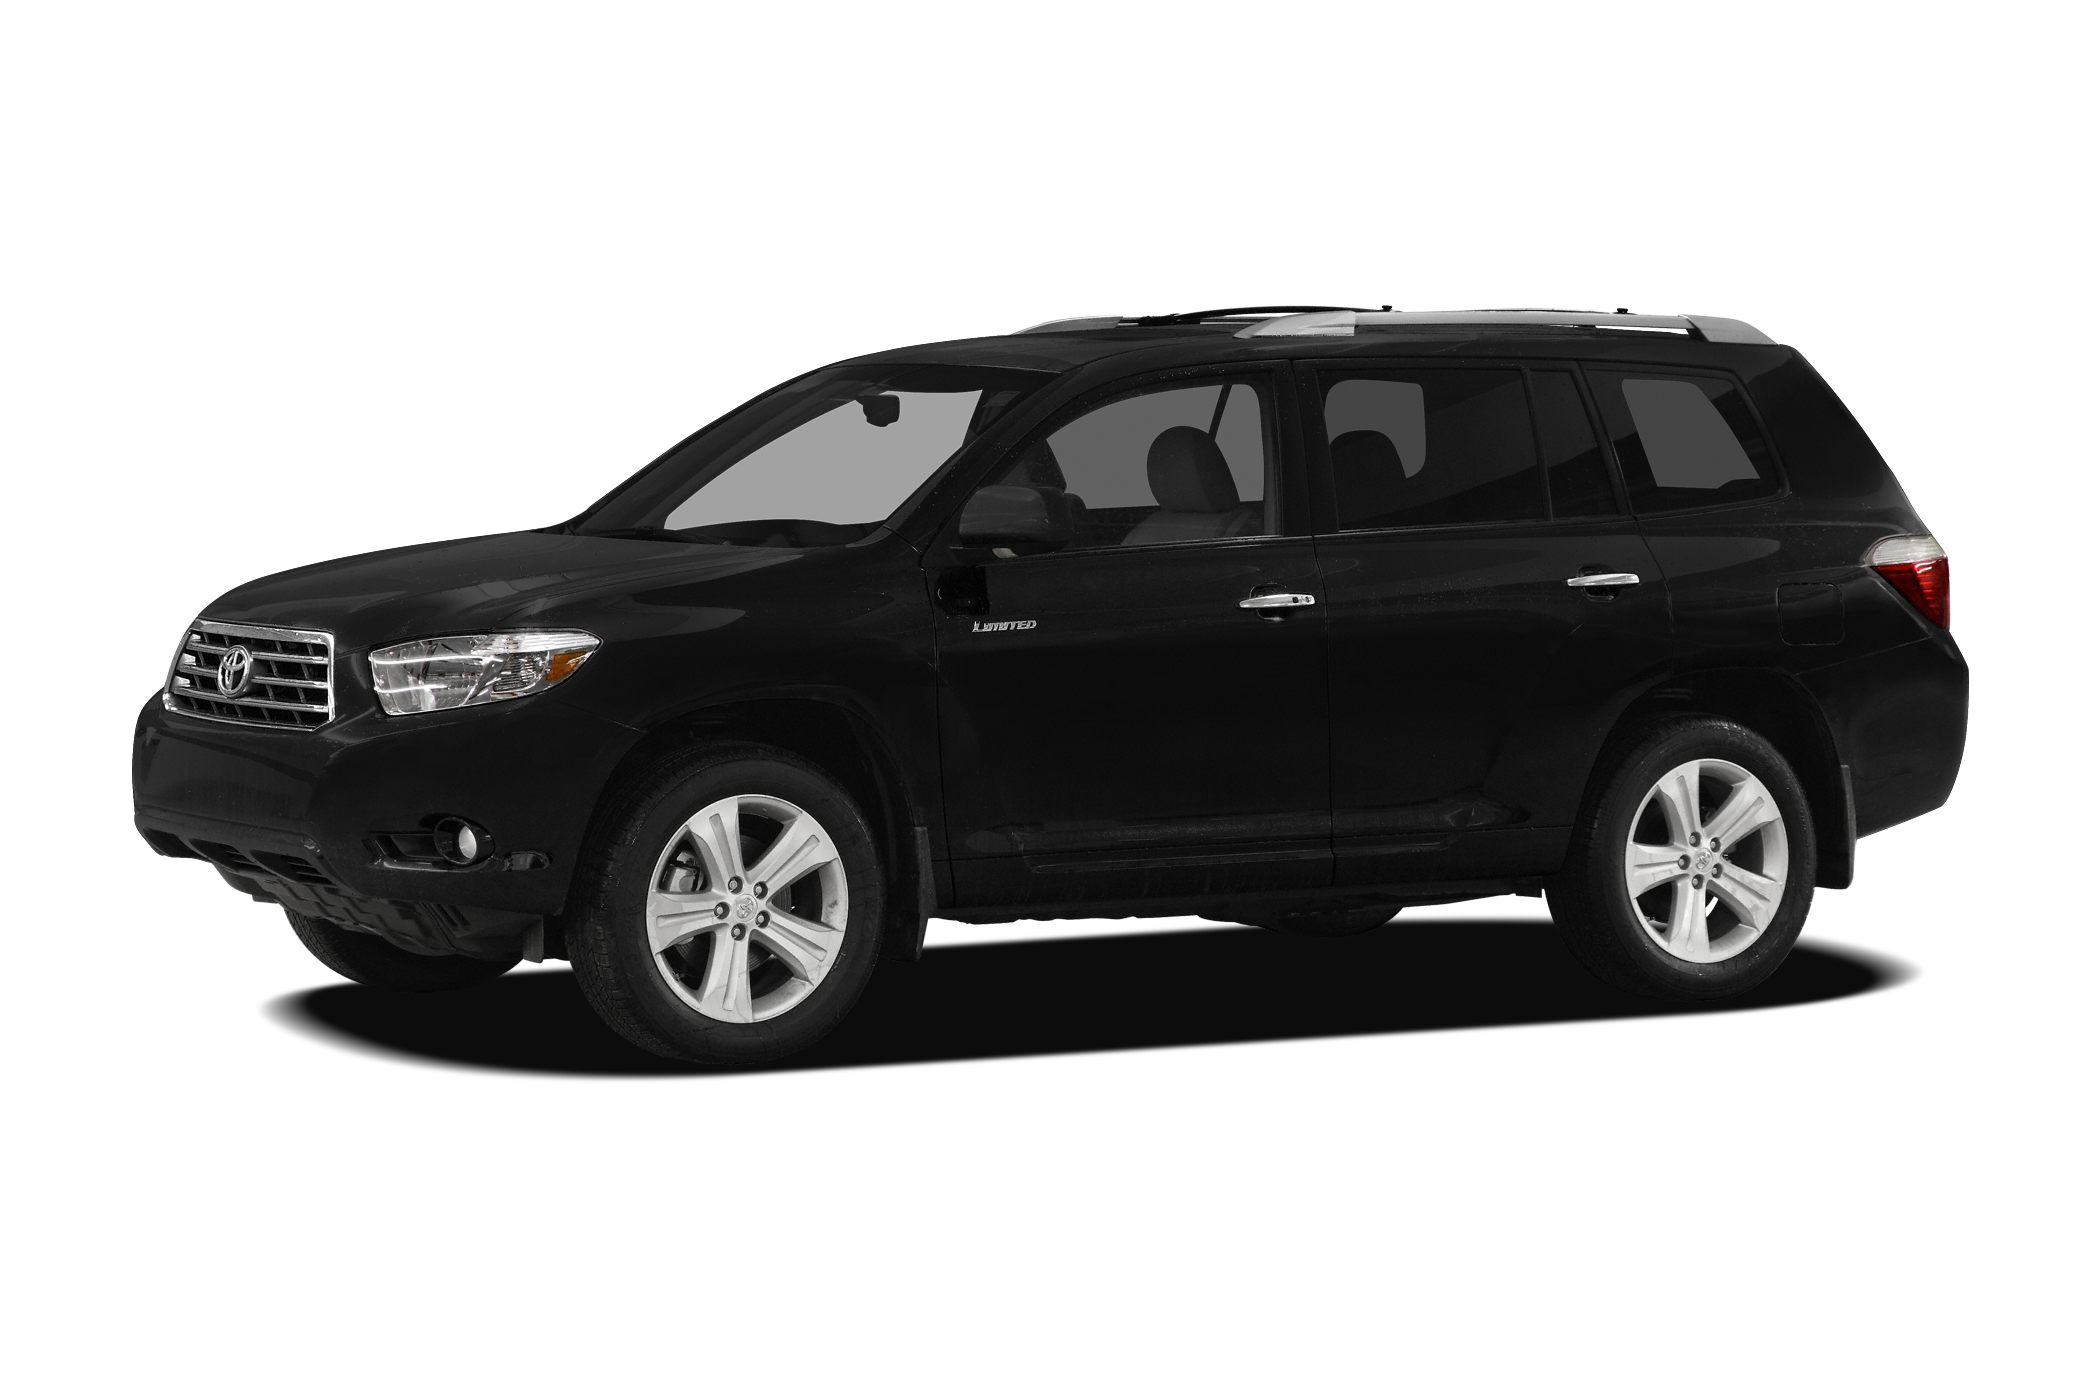 Used Cars Minneapolis Best Of Used Cars for Sale at Rudy Luther toyota In Minneapolis Mn Under